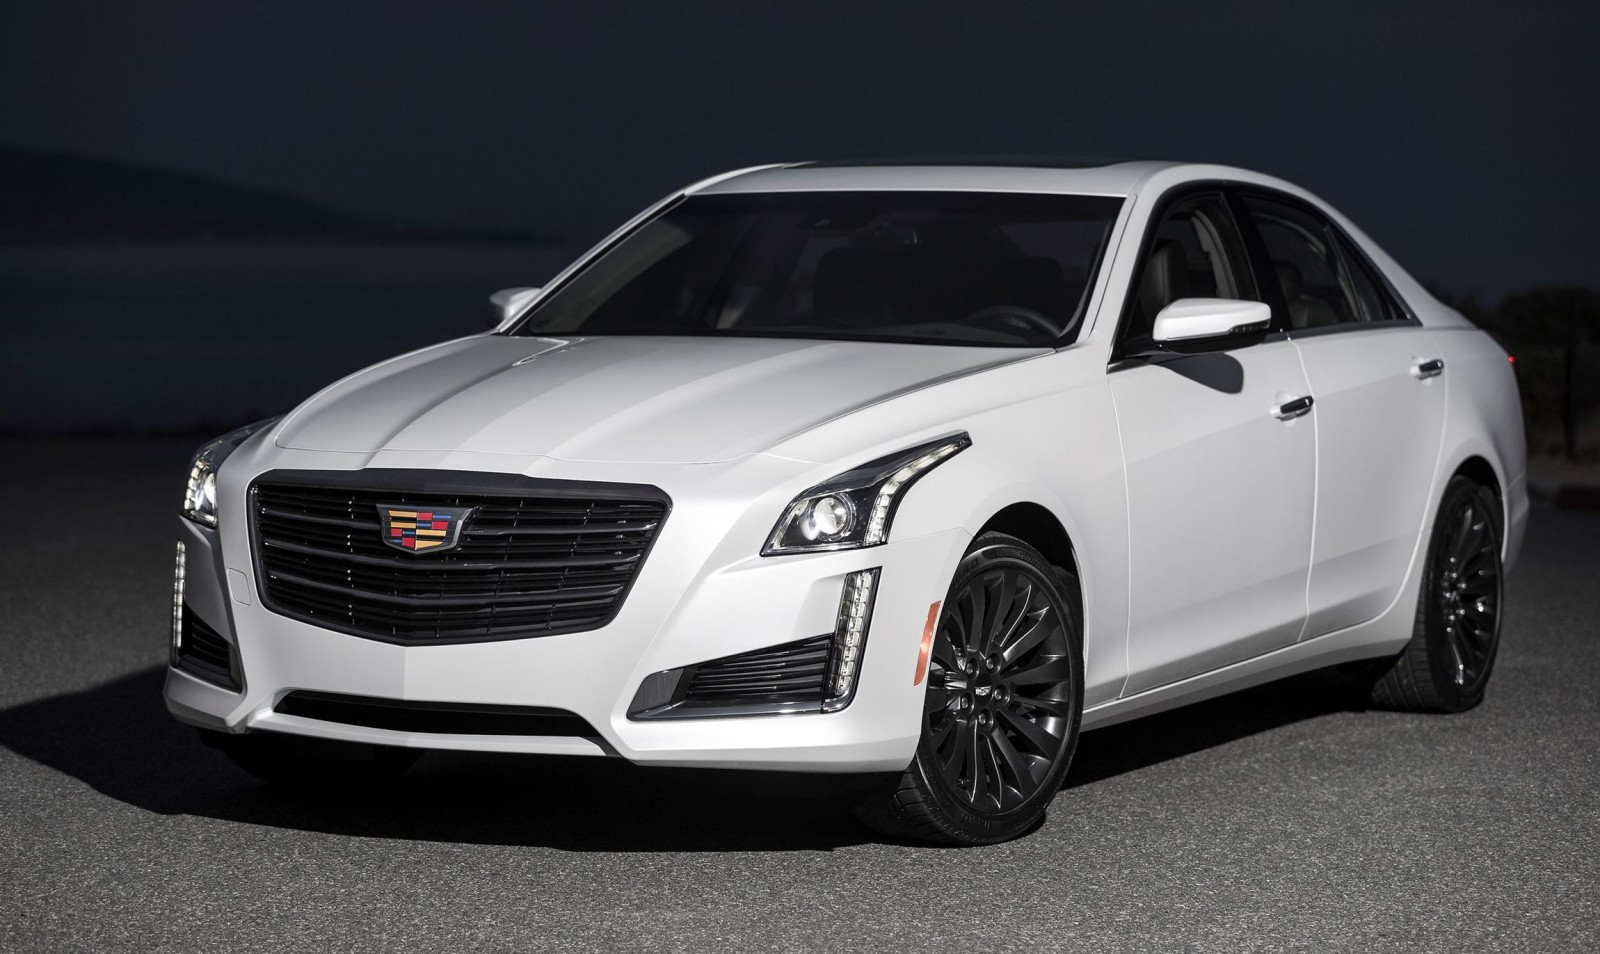 2017 Cadillac Ats 3.6 L Premium Performance >> 2016 Cadillac ATS and CTS Score Much-Needed BLACK PACKS